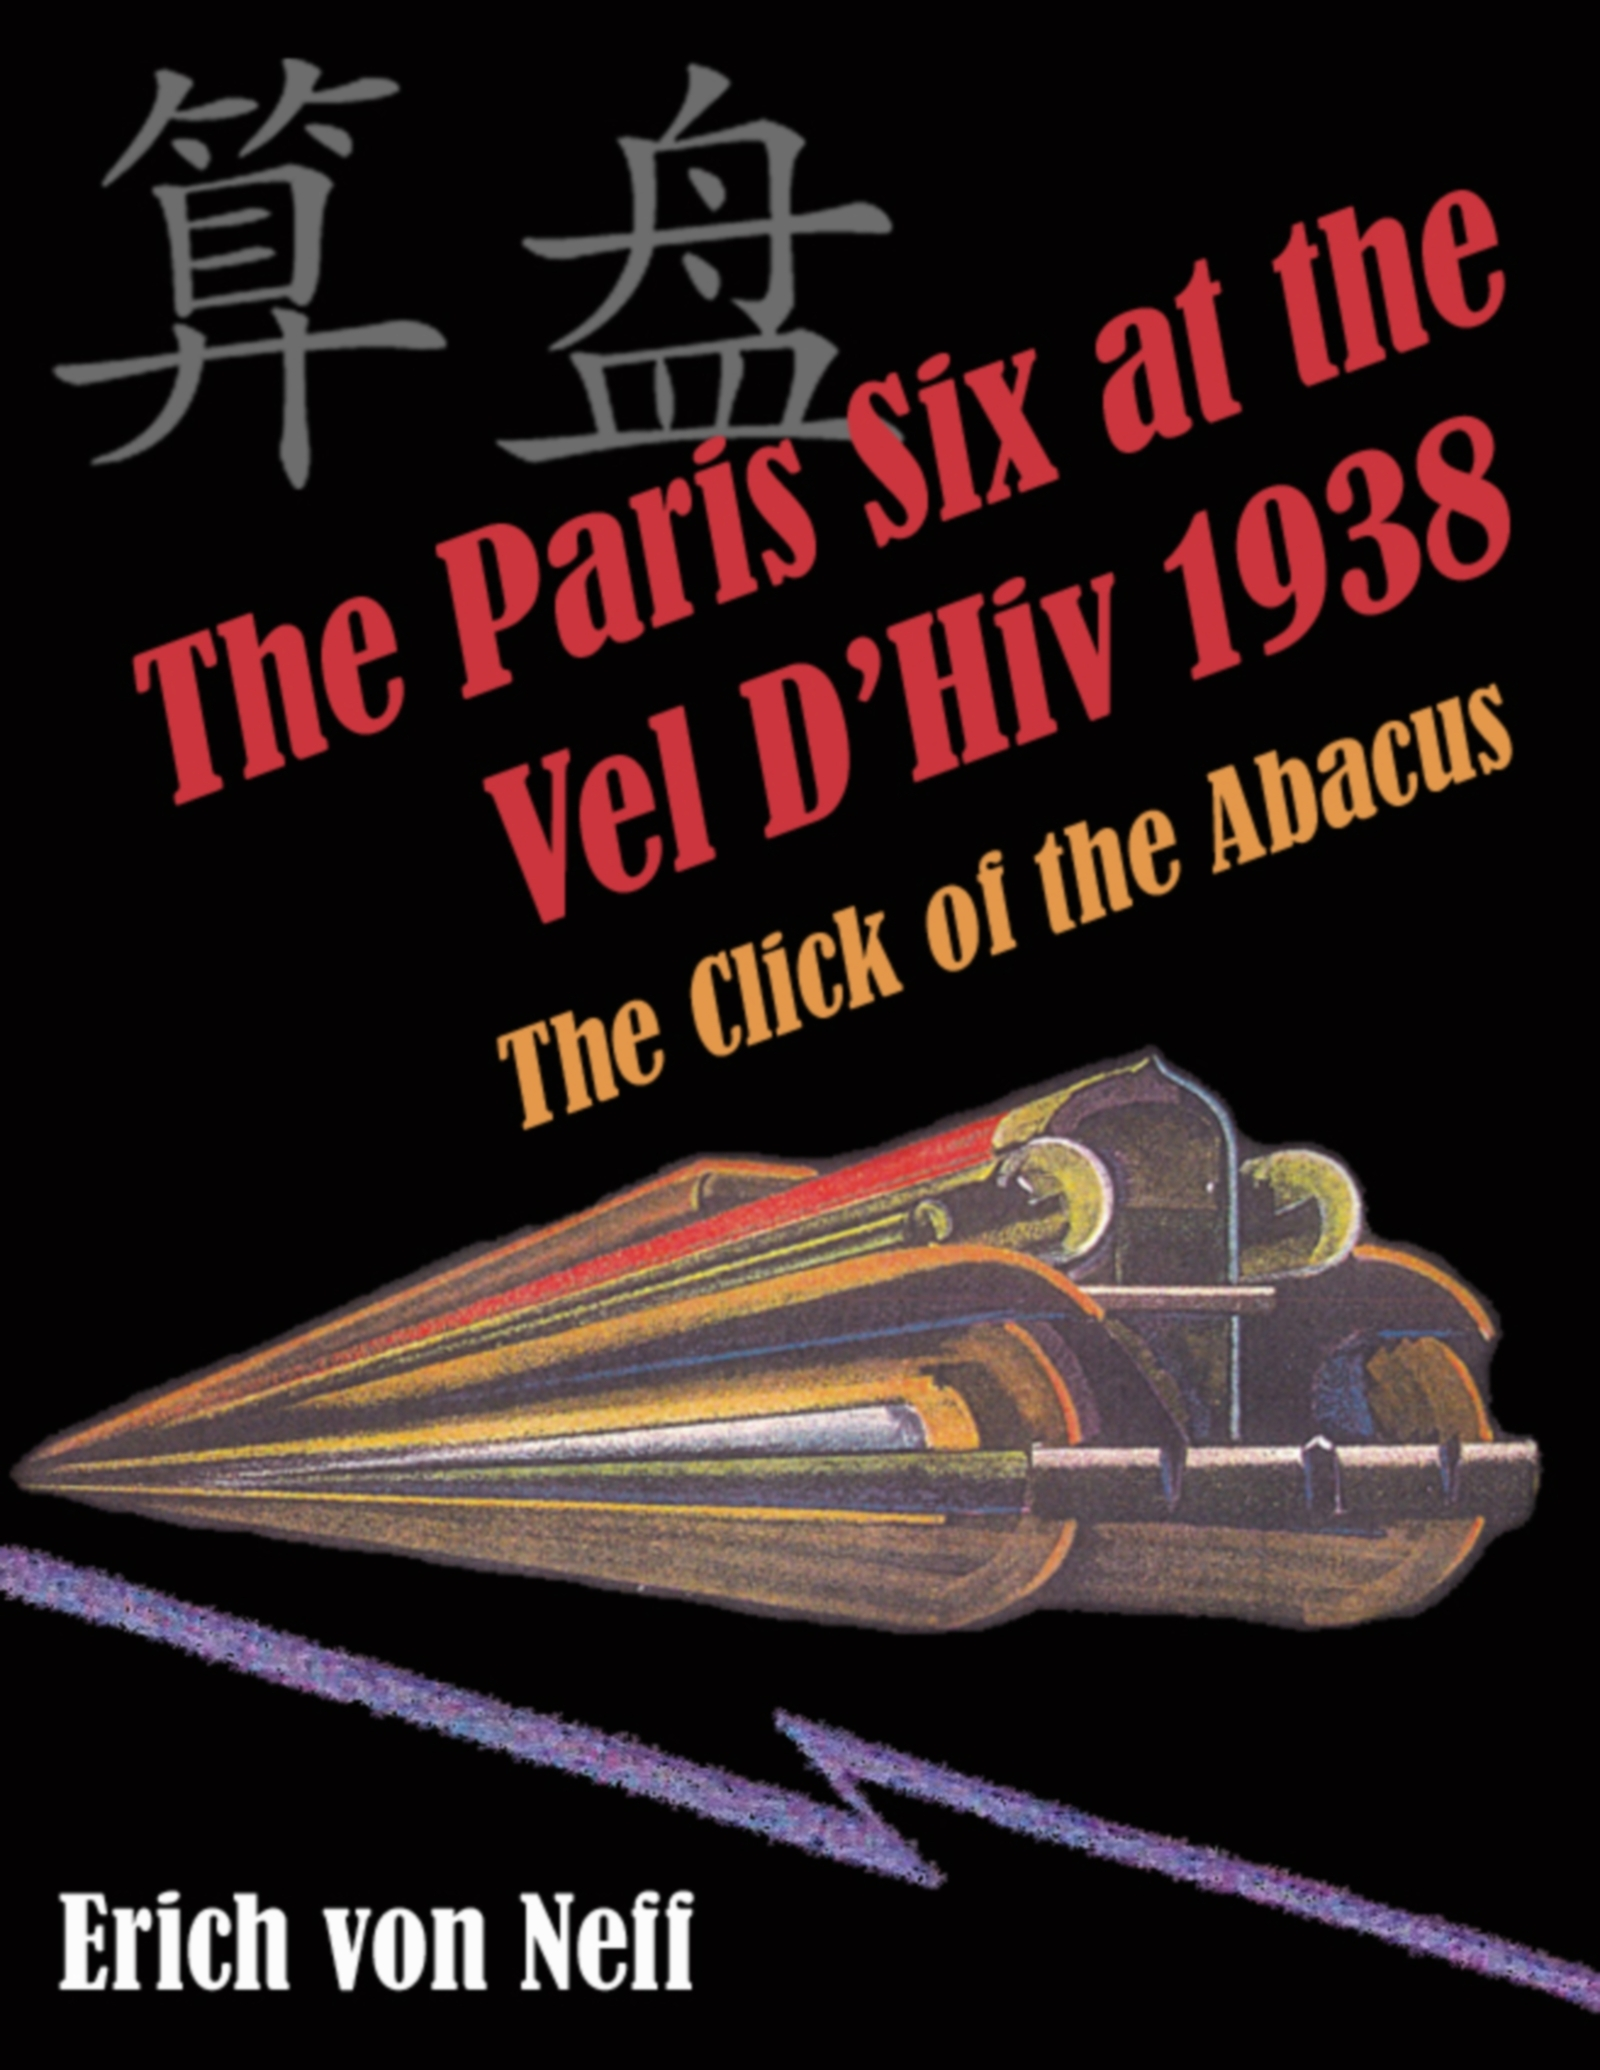 The Paris Six at the Vel D'Hiv 1938: The Click of the Abacus